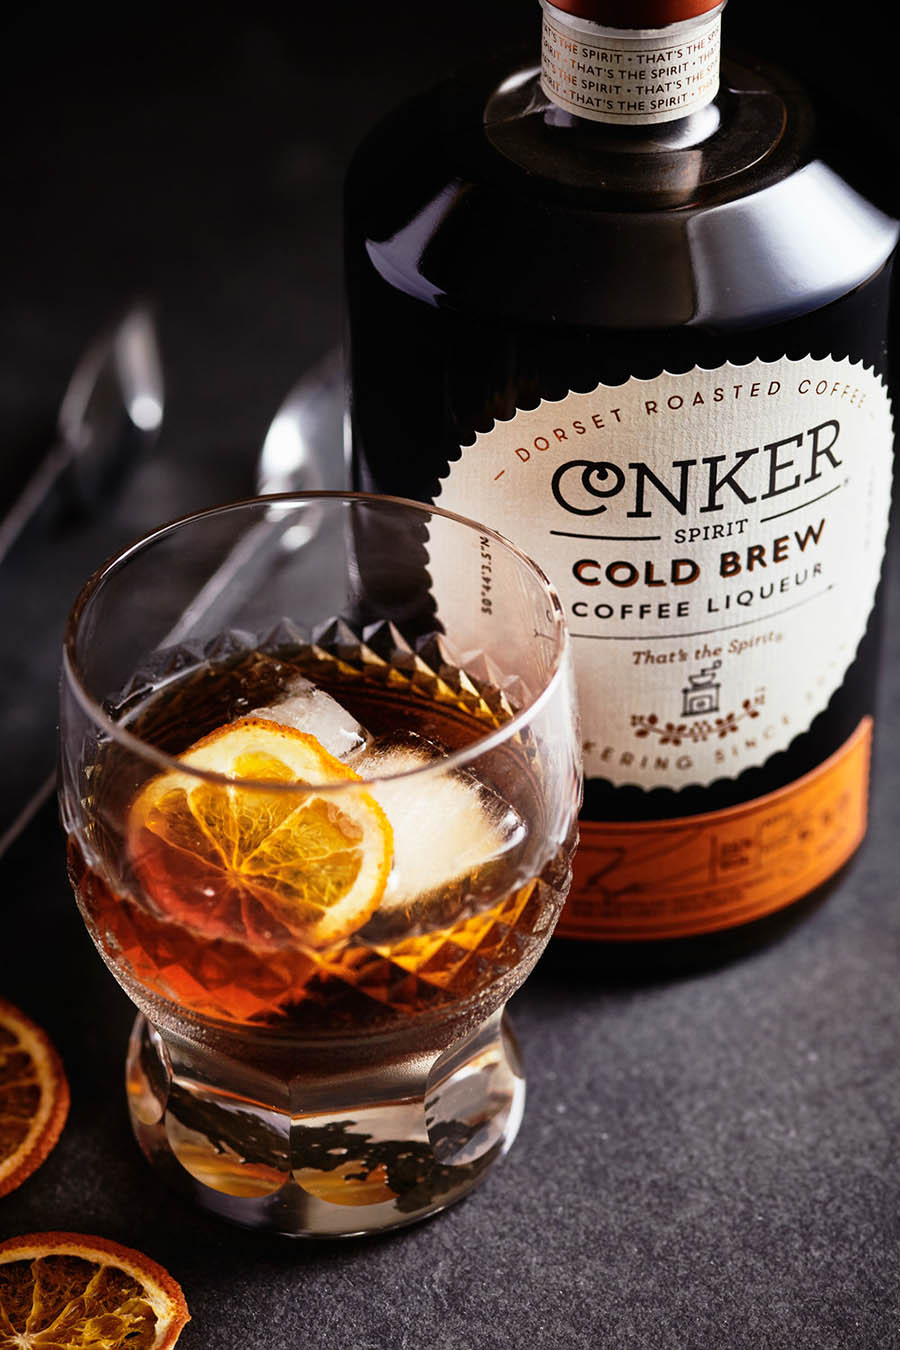 conker cold brew coffee liquor drink photography